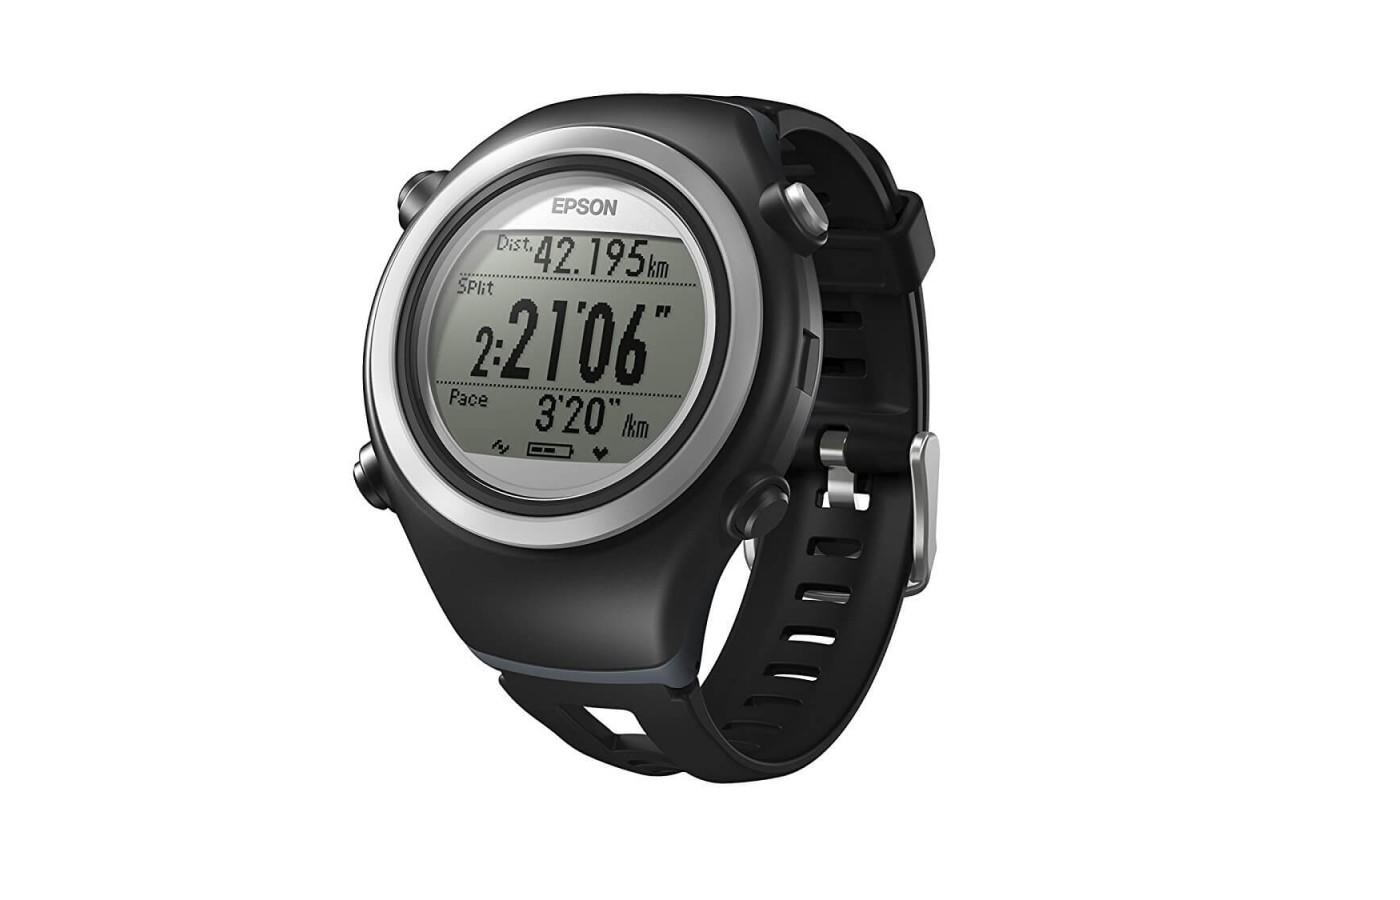 Epson Runsense SF-510 is a comprehensive running watch